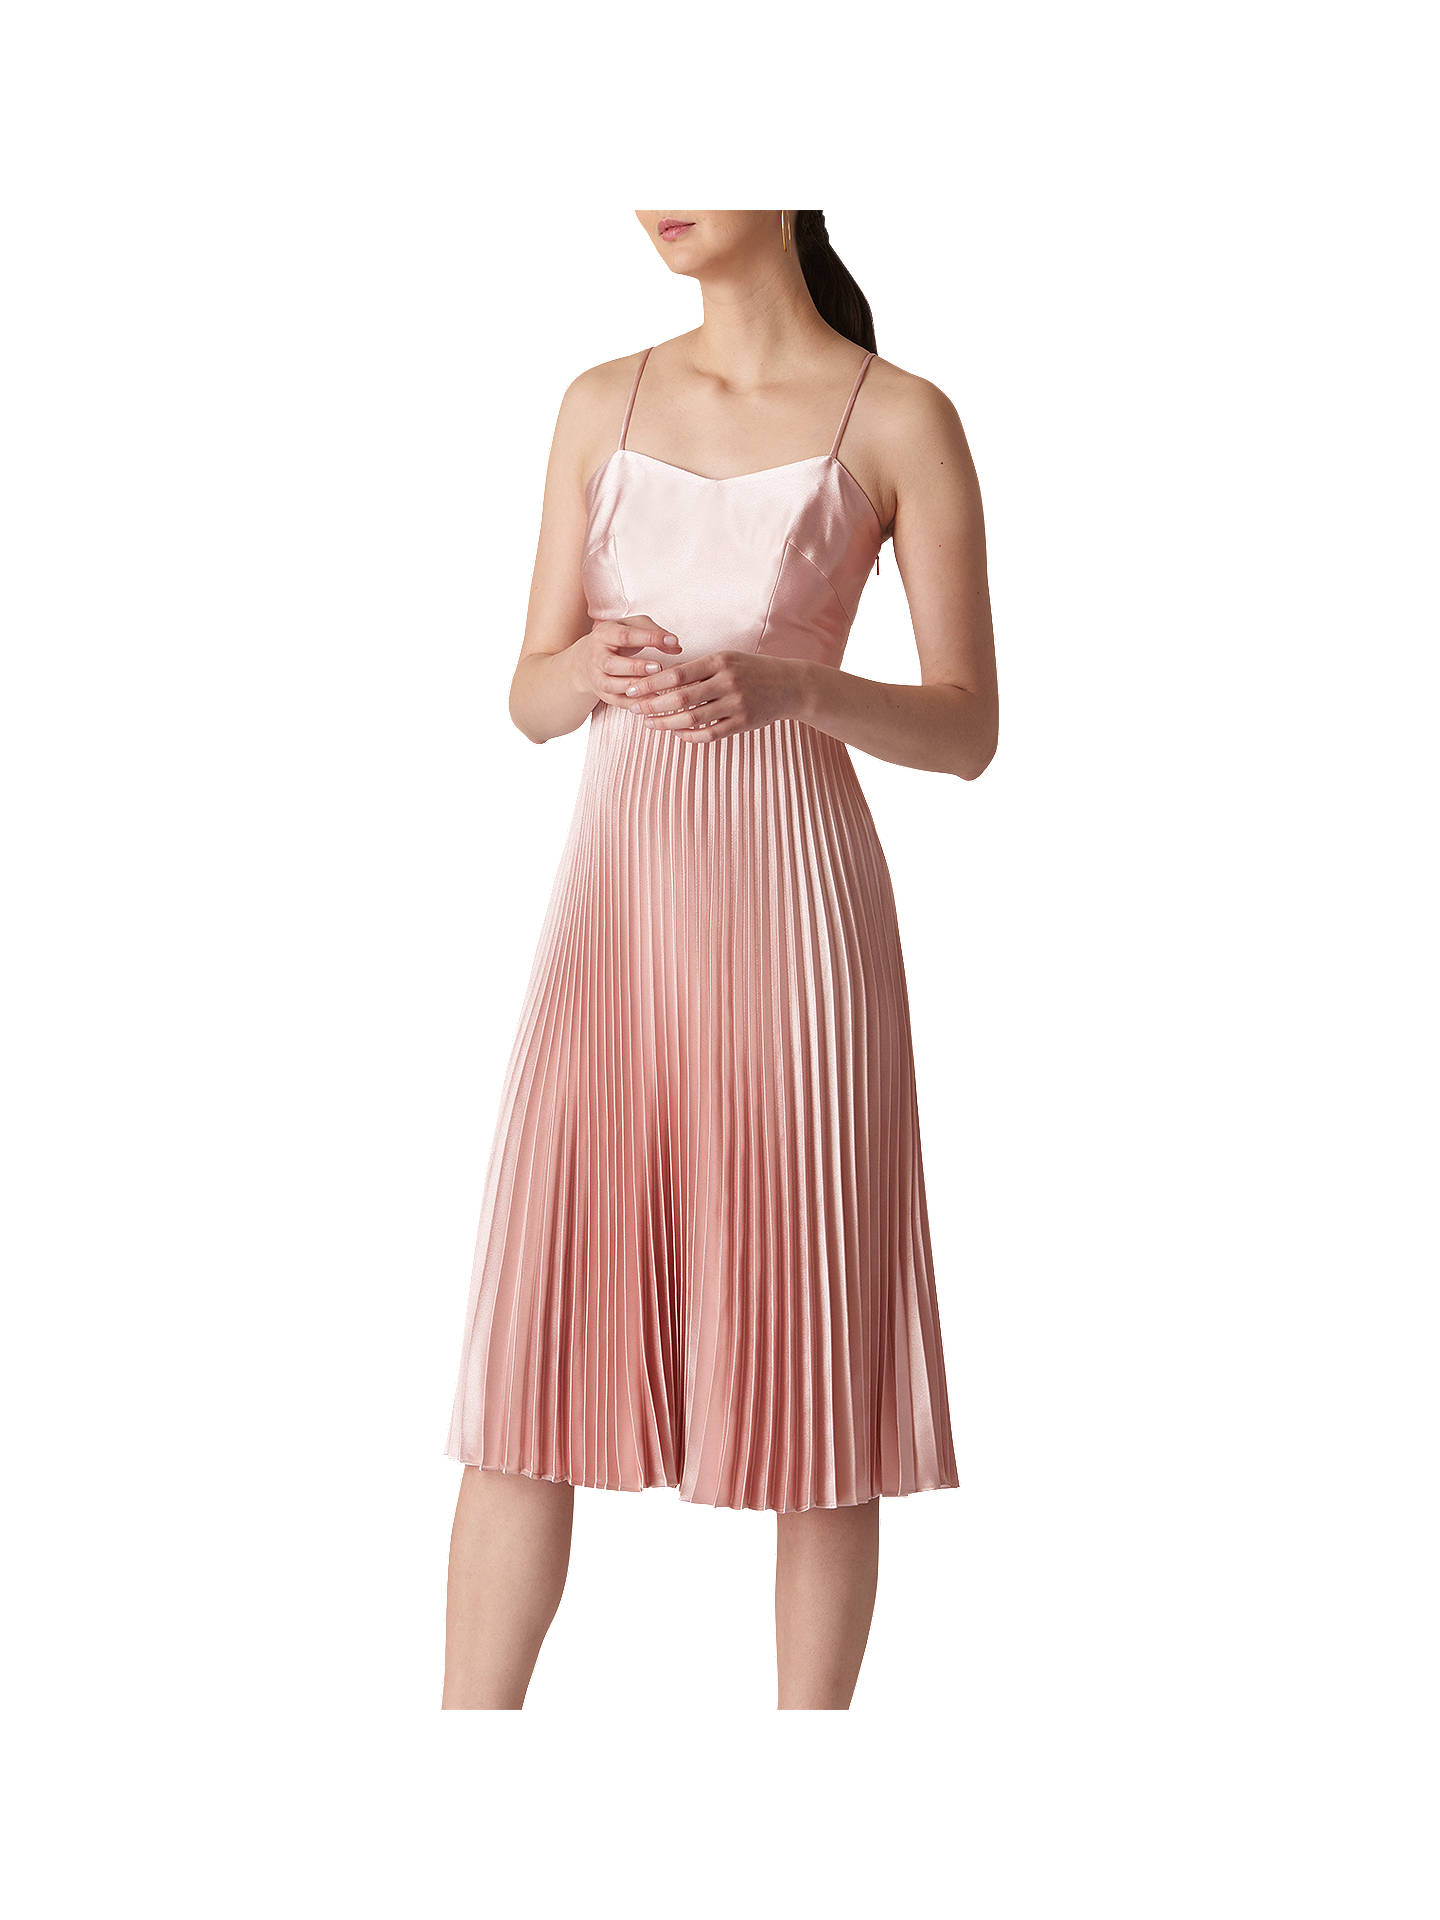 7e358f852b Buy Whistles Satin Pleated Strappy Dress, Pale Pink, 16 Online at  johnlewis.com ...